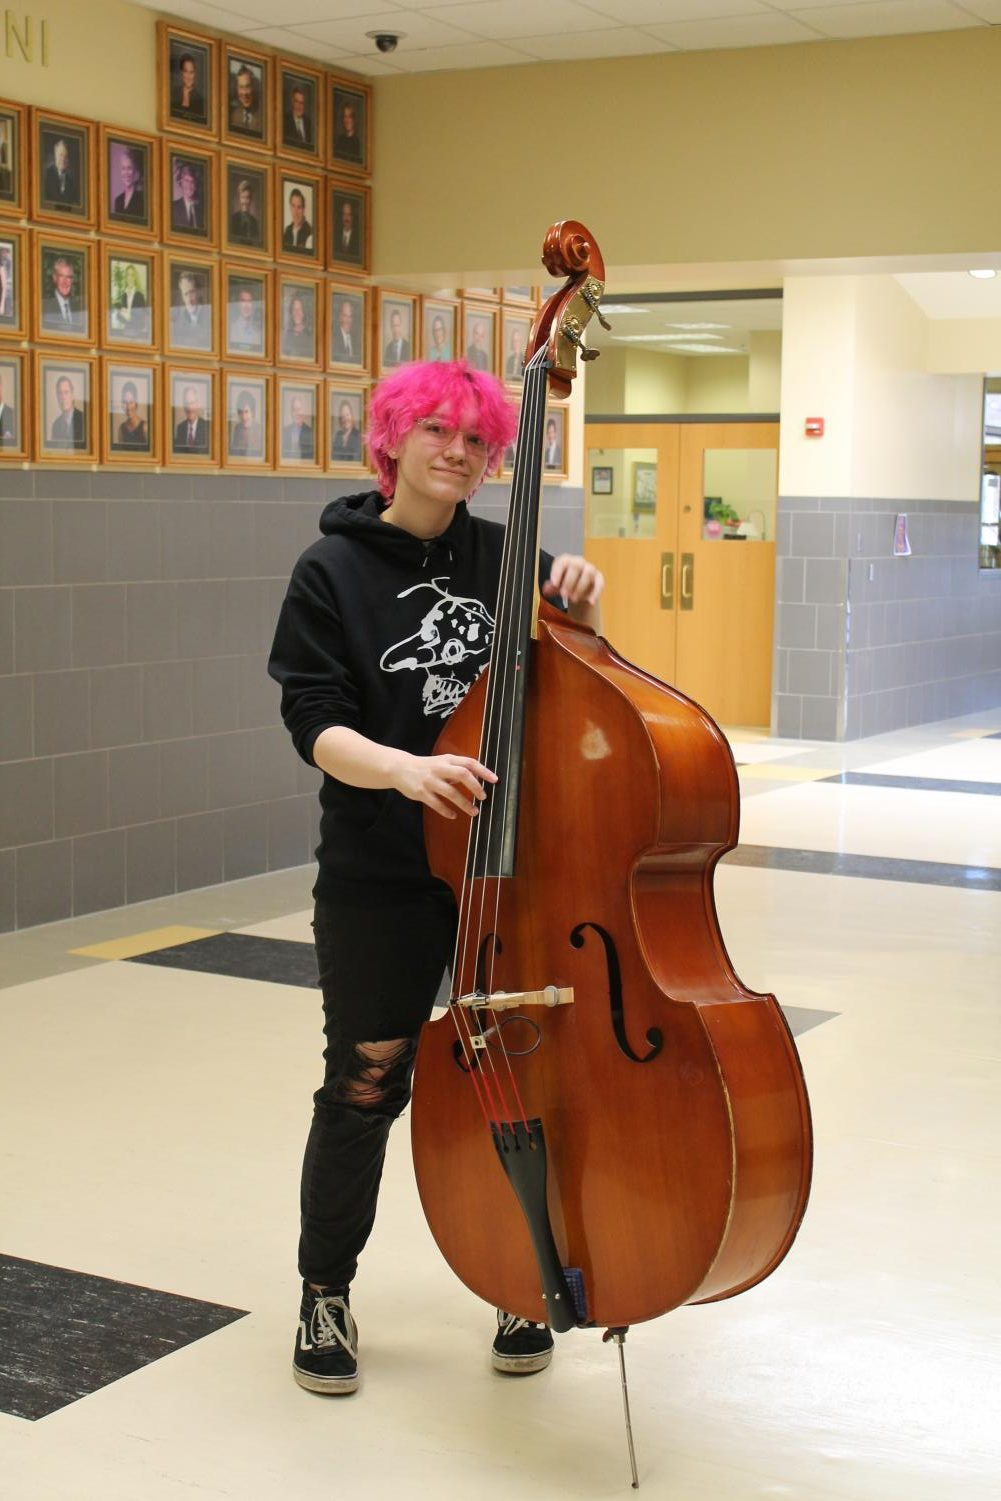 Tomasek poses with their bass of choice outside of the music hall.